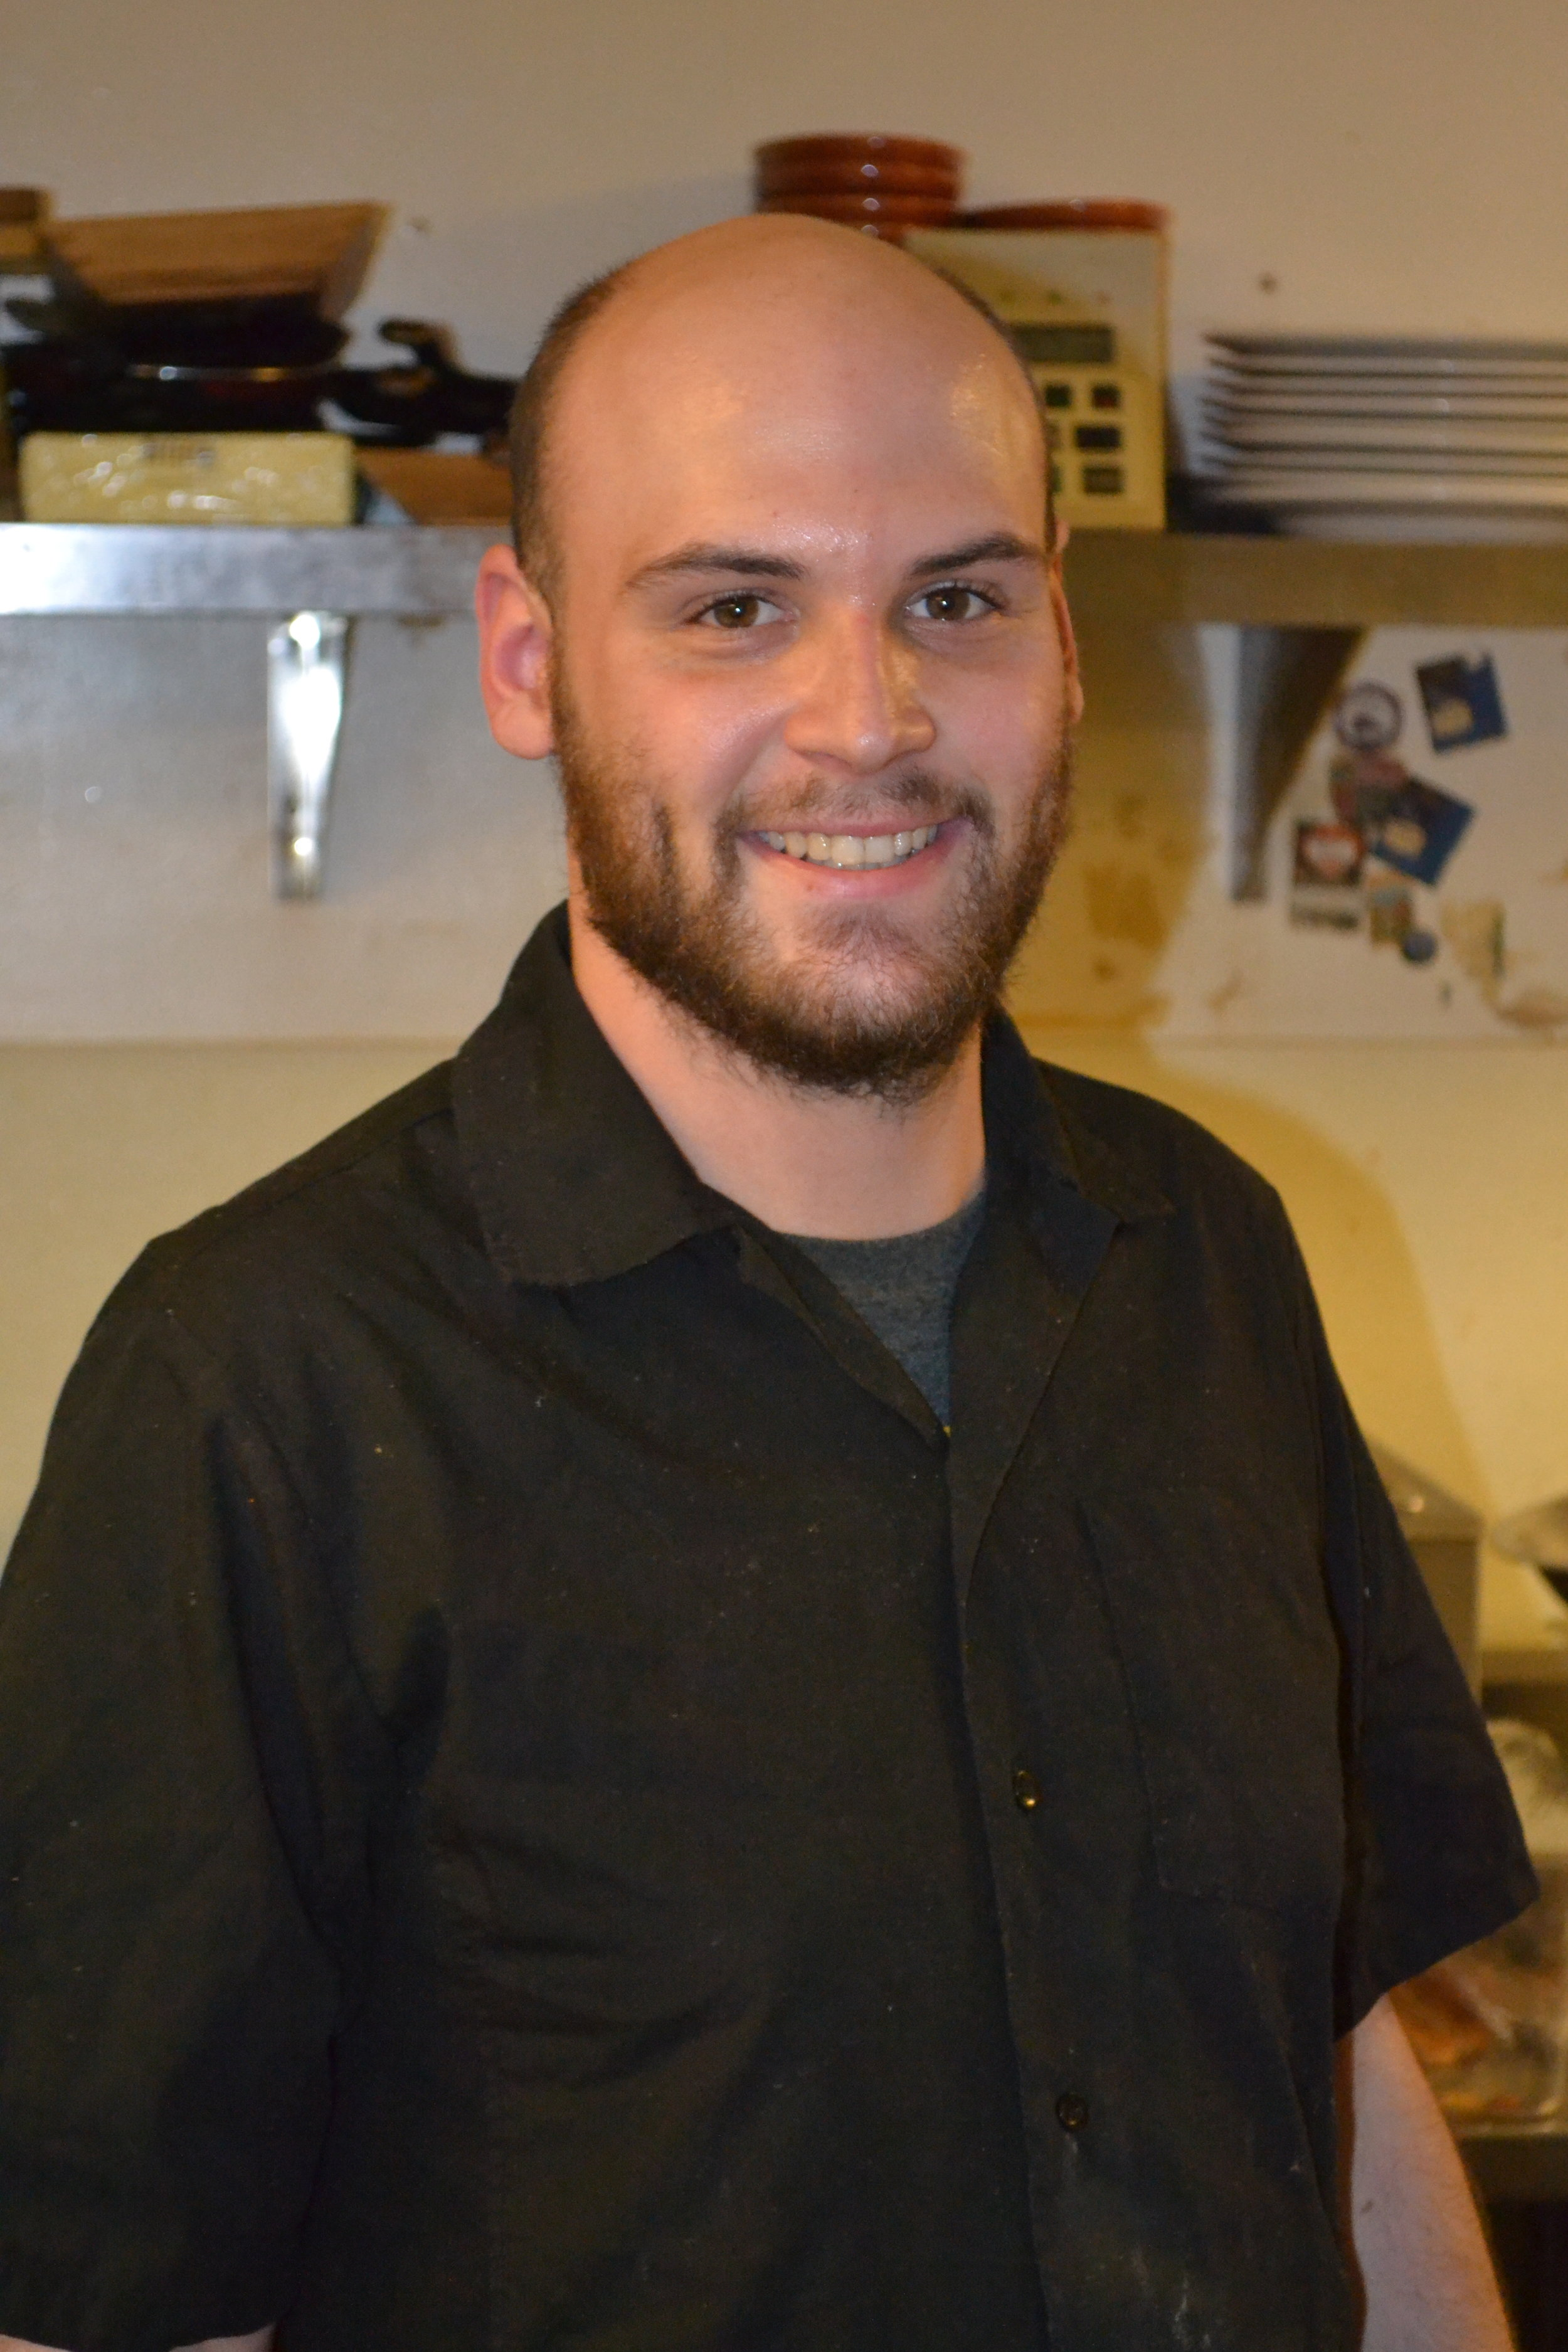 CHEF NICK  Nick's hobby is skateboarding in his free time. When it comes to food, he loves everything.